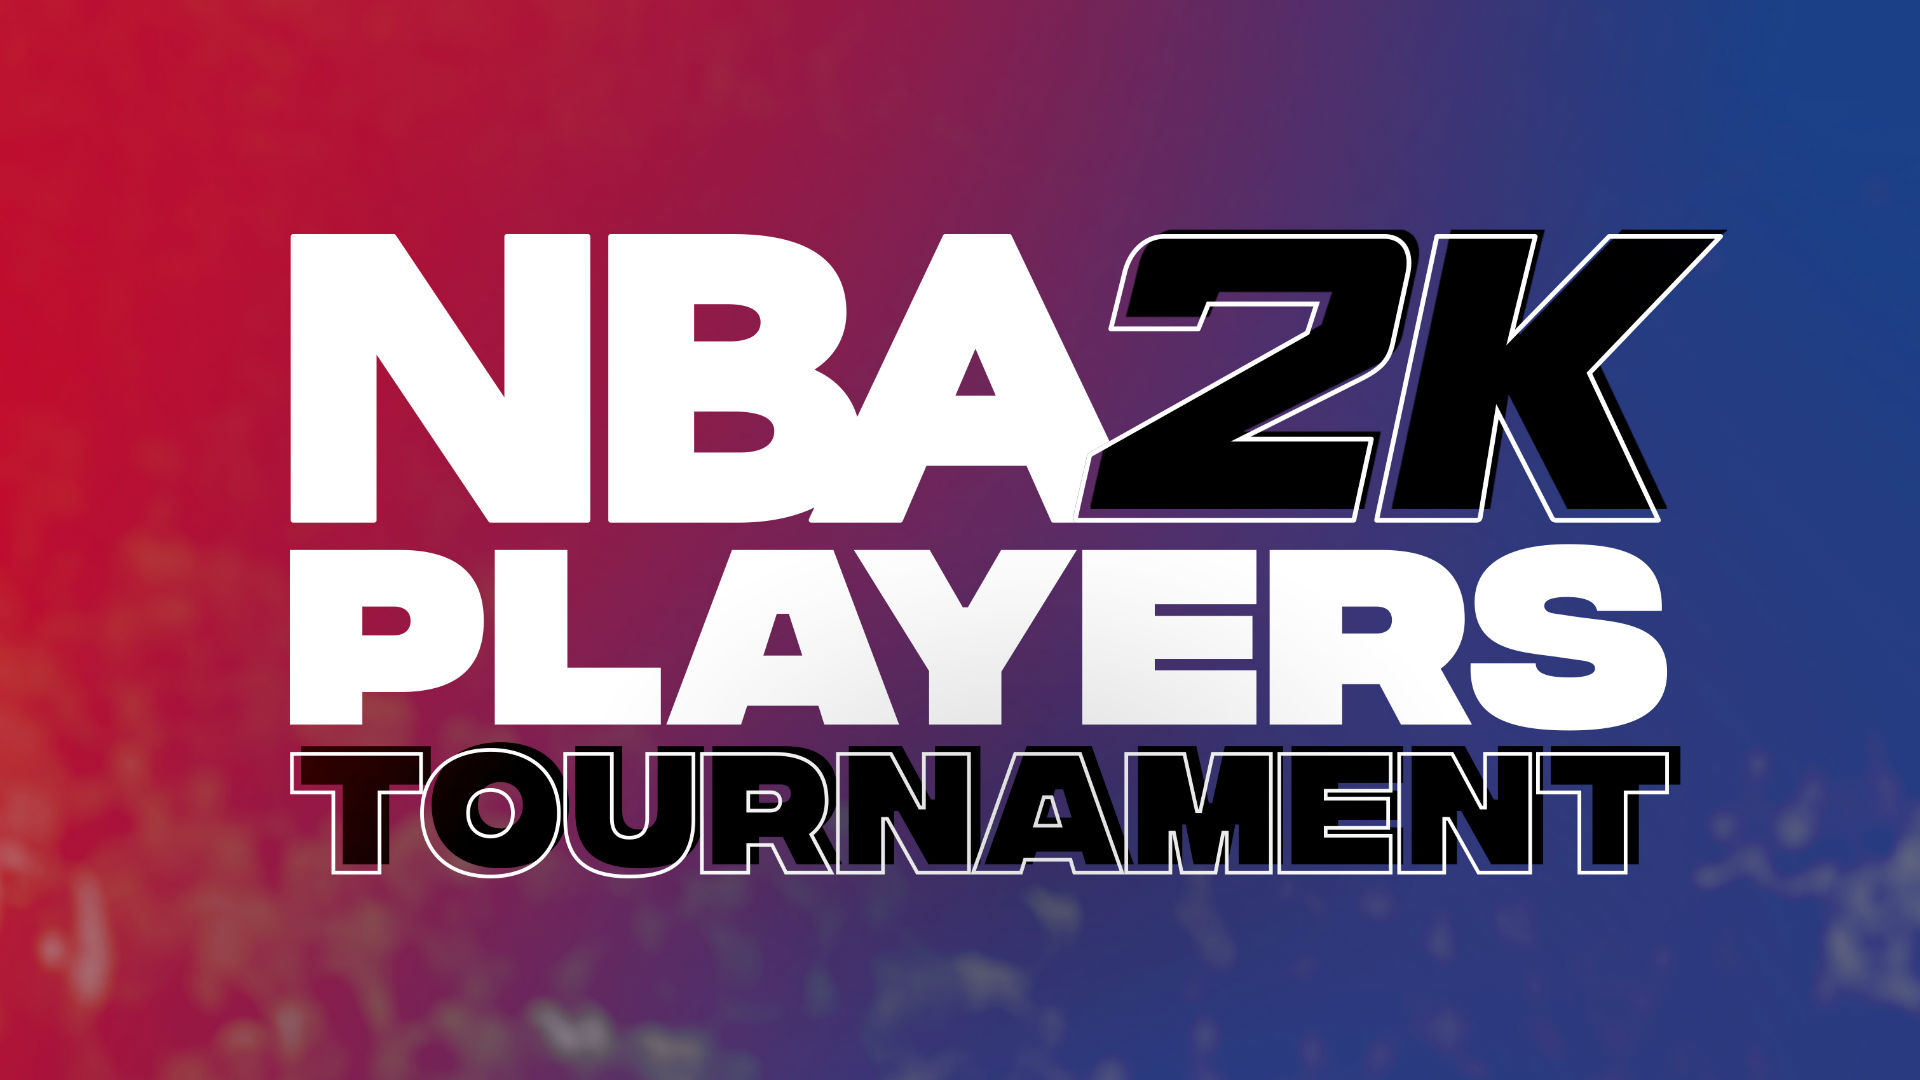 'NBA 2K' Players Tournament 2020: calendario completo de TV, soporte y lista de entradas para juegos en ESPN 3